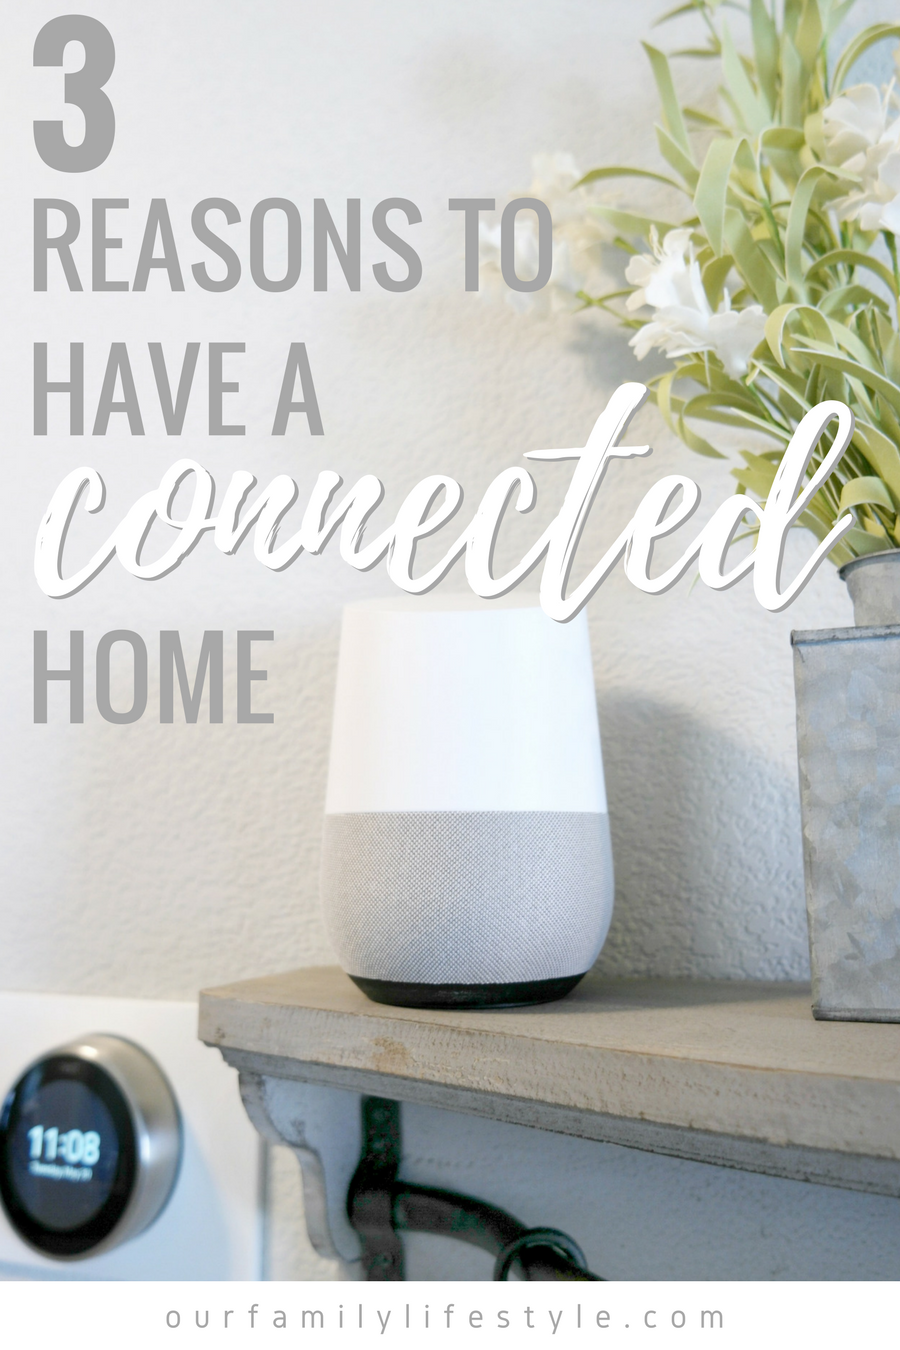 3 Reasons to Have a Connected Home